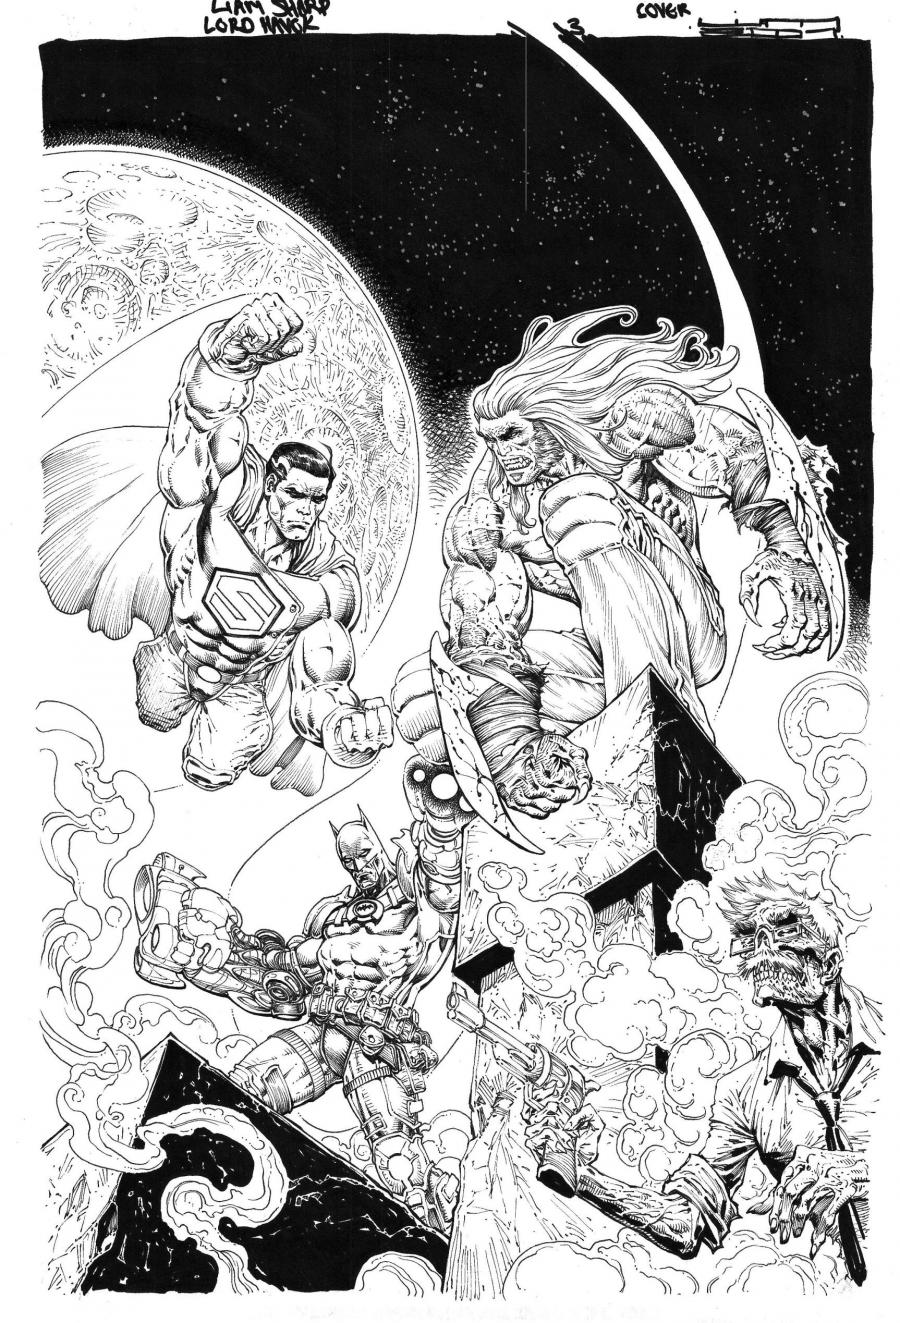 Originale cover BATMAN and SUPERMAN from Lord Havok and the Extremists - Volume I, Part Three : The Beast Within by Liam Sharp